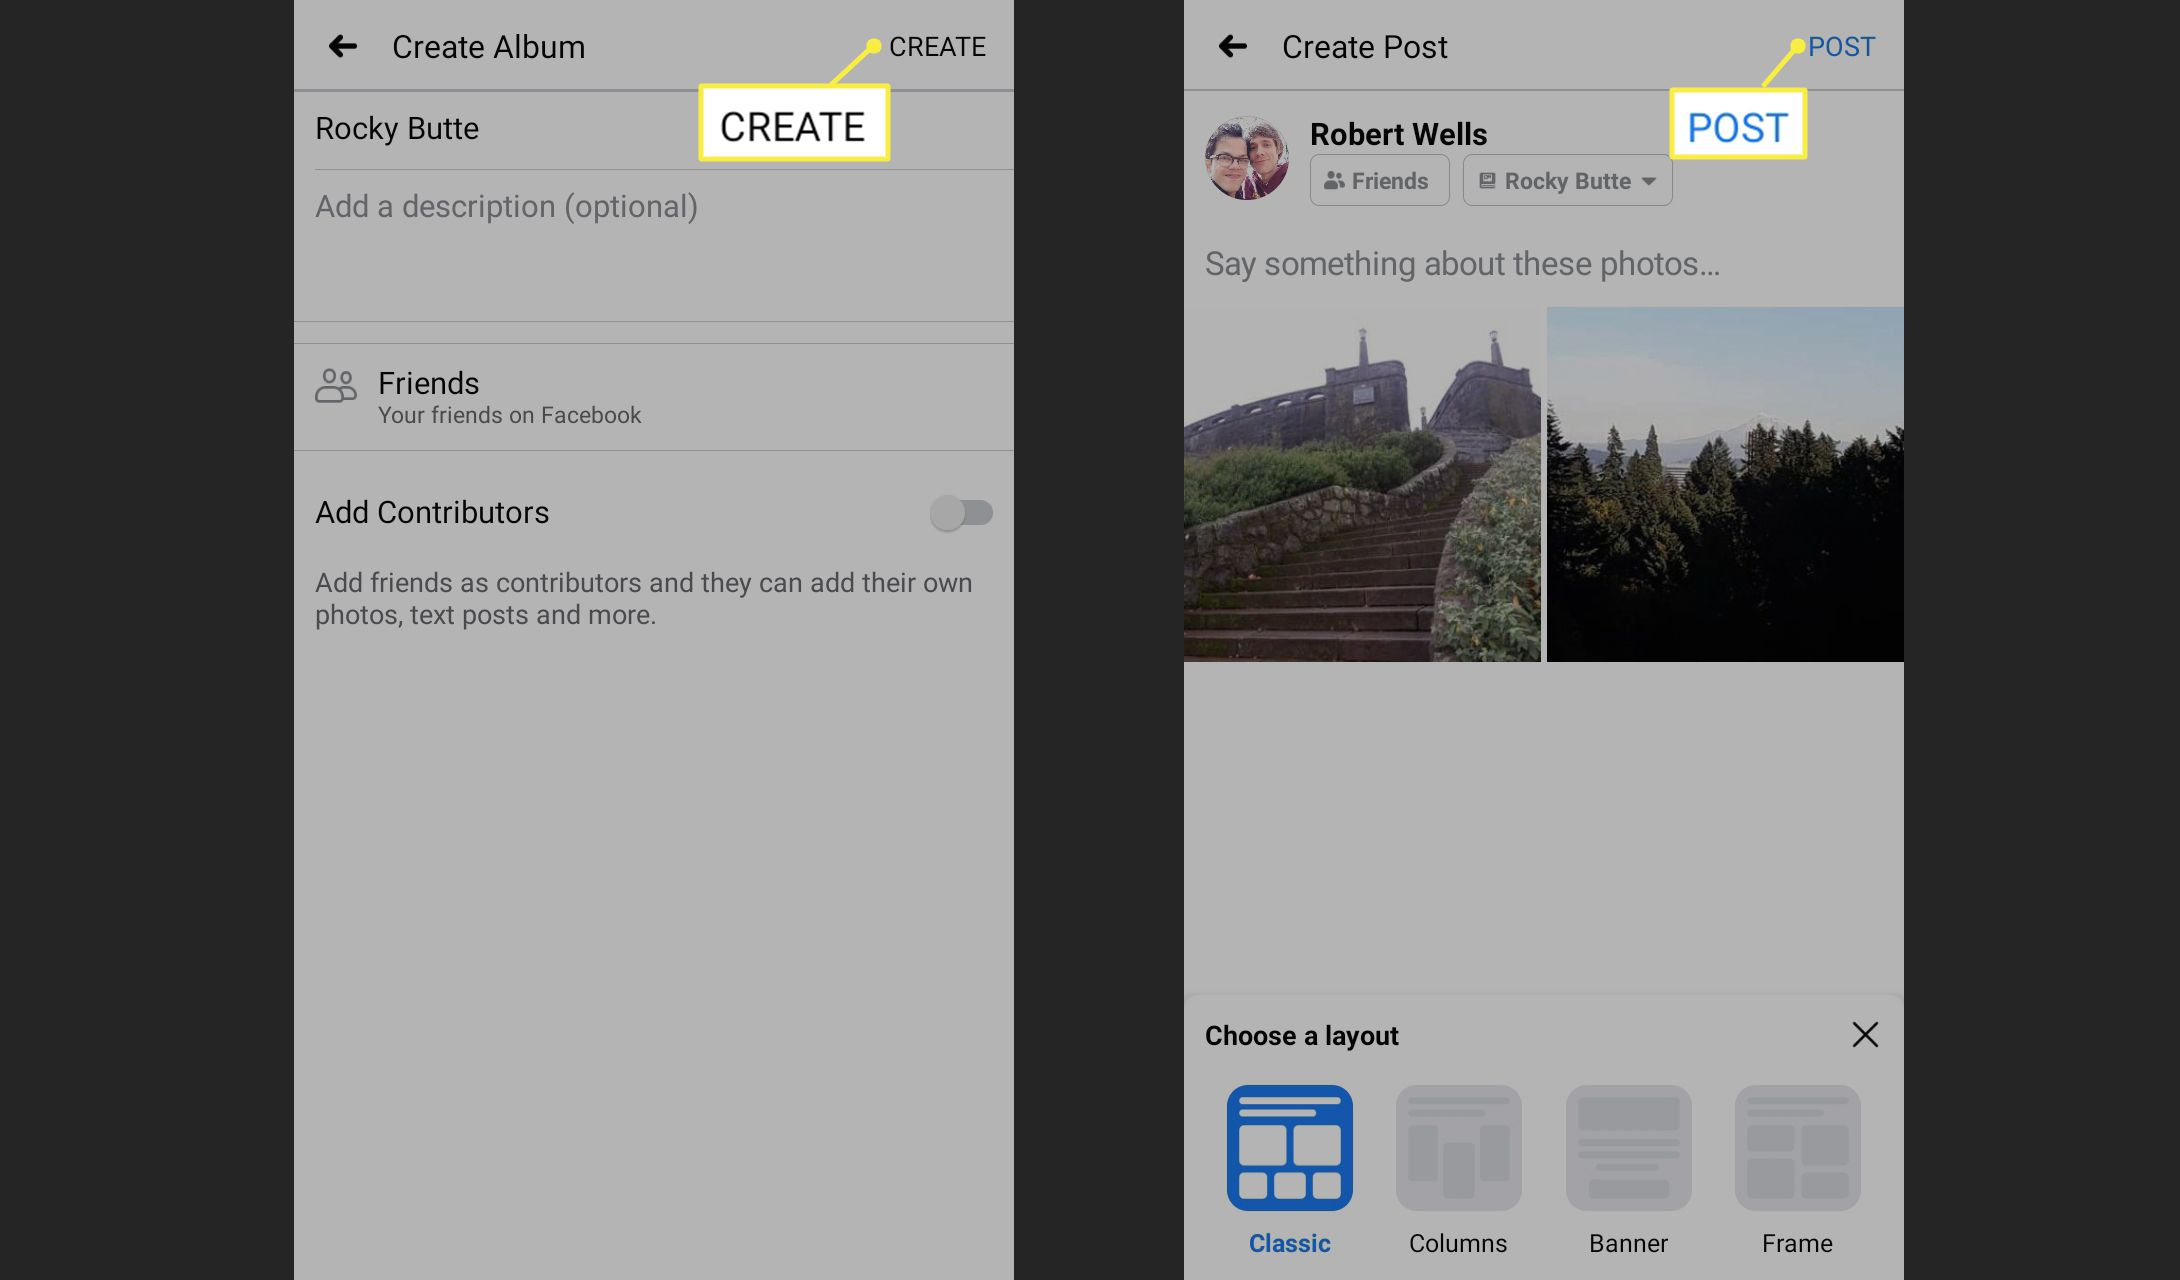 Create and Post in the Facebook app